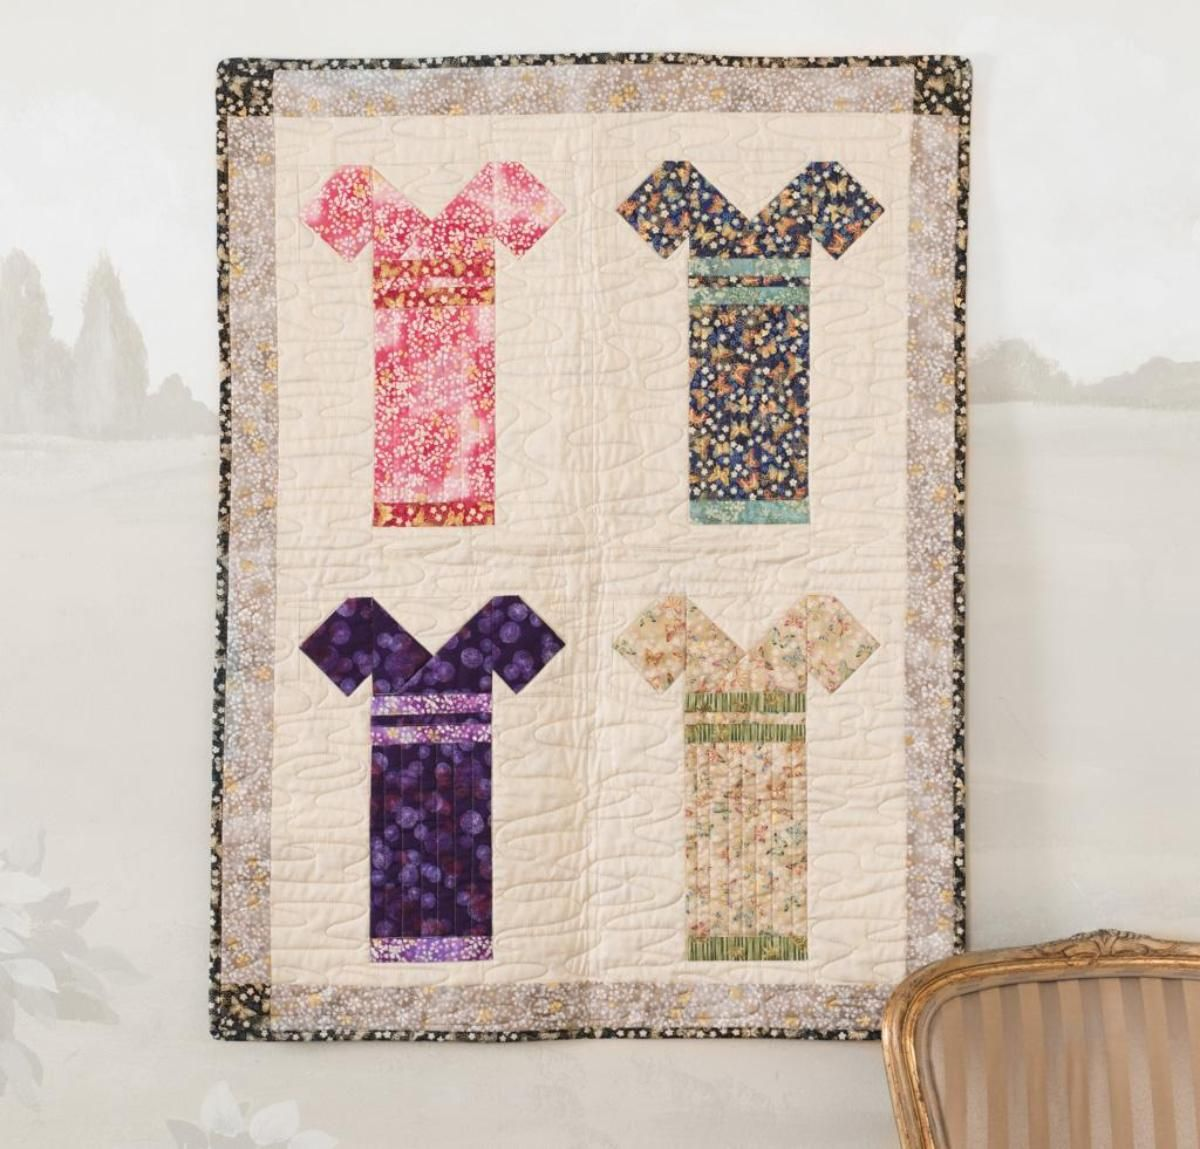 Kimonos Quilt Kit | Kimonos, Fabrics and Quilt top : fabric for quilting online - Adamdwight.com